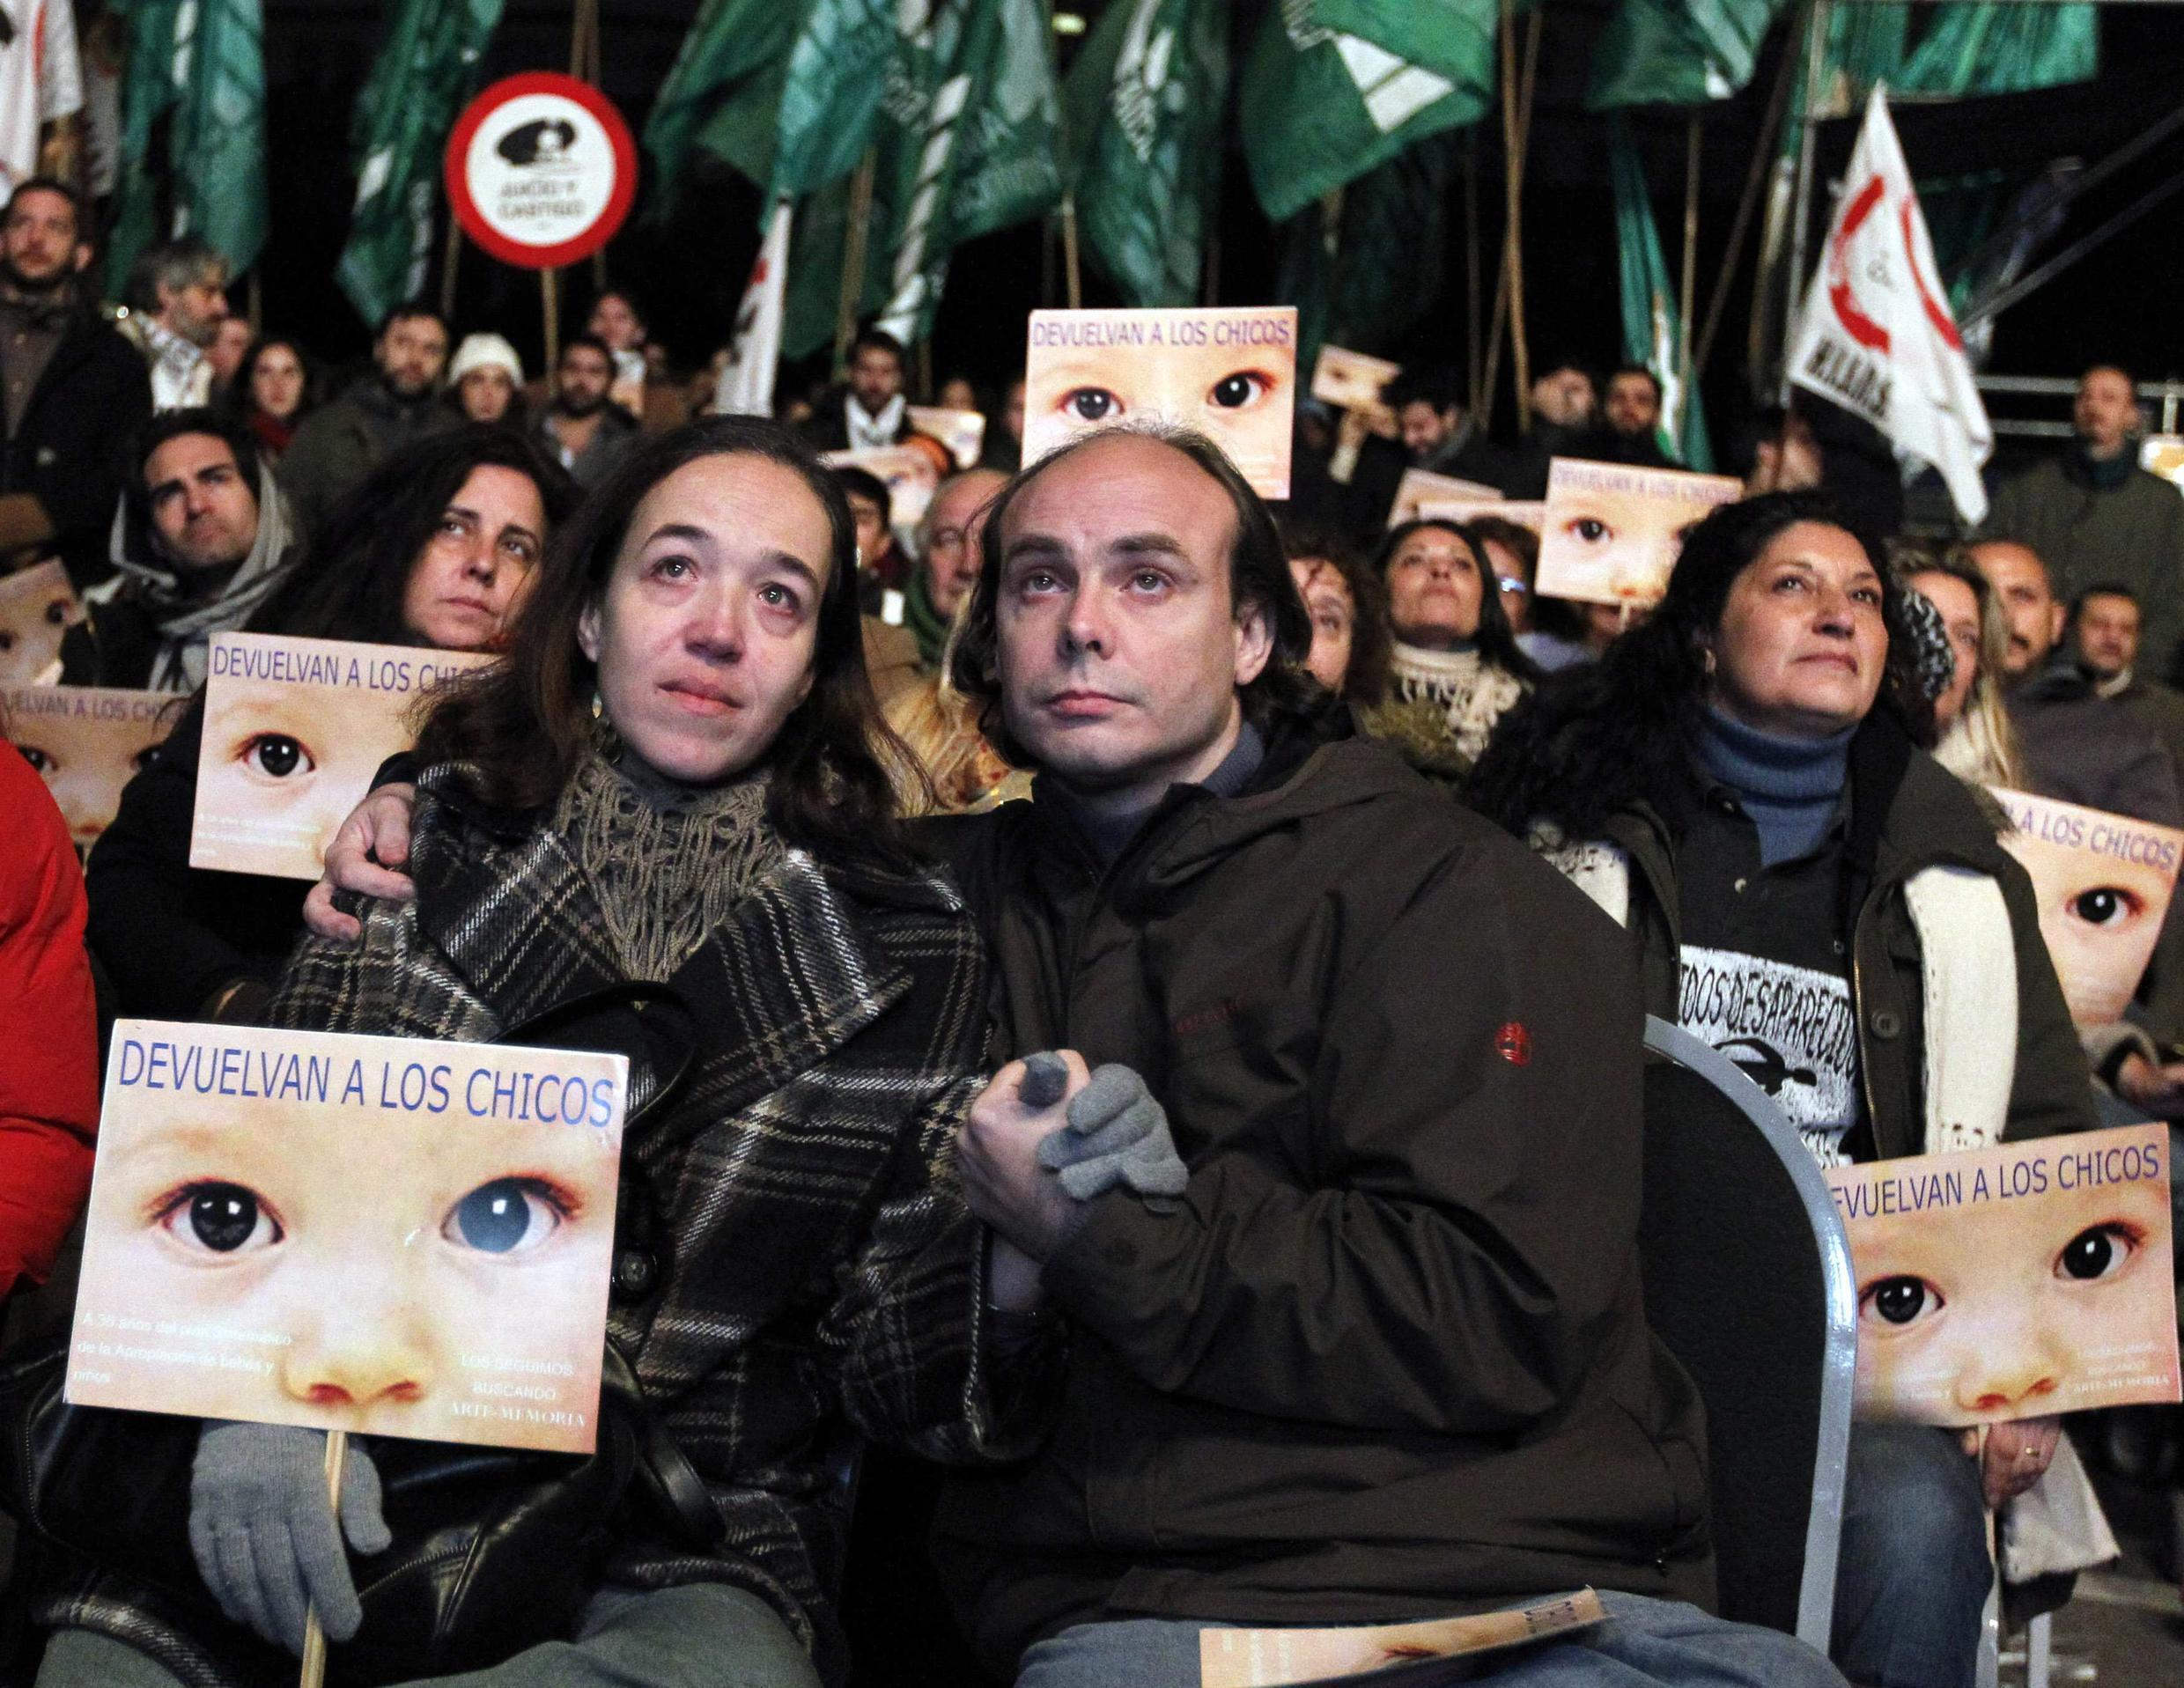 Members of human rights groups react after hearing the verdict in the trial of former Argentine dictator Jorge Videla and other military officers in Buenos Aires, 5 July, 2012